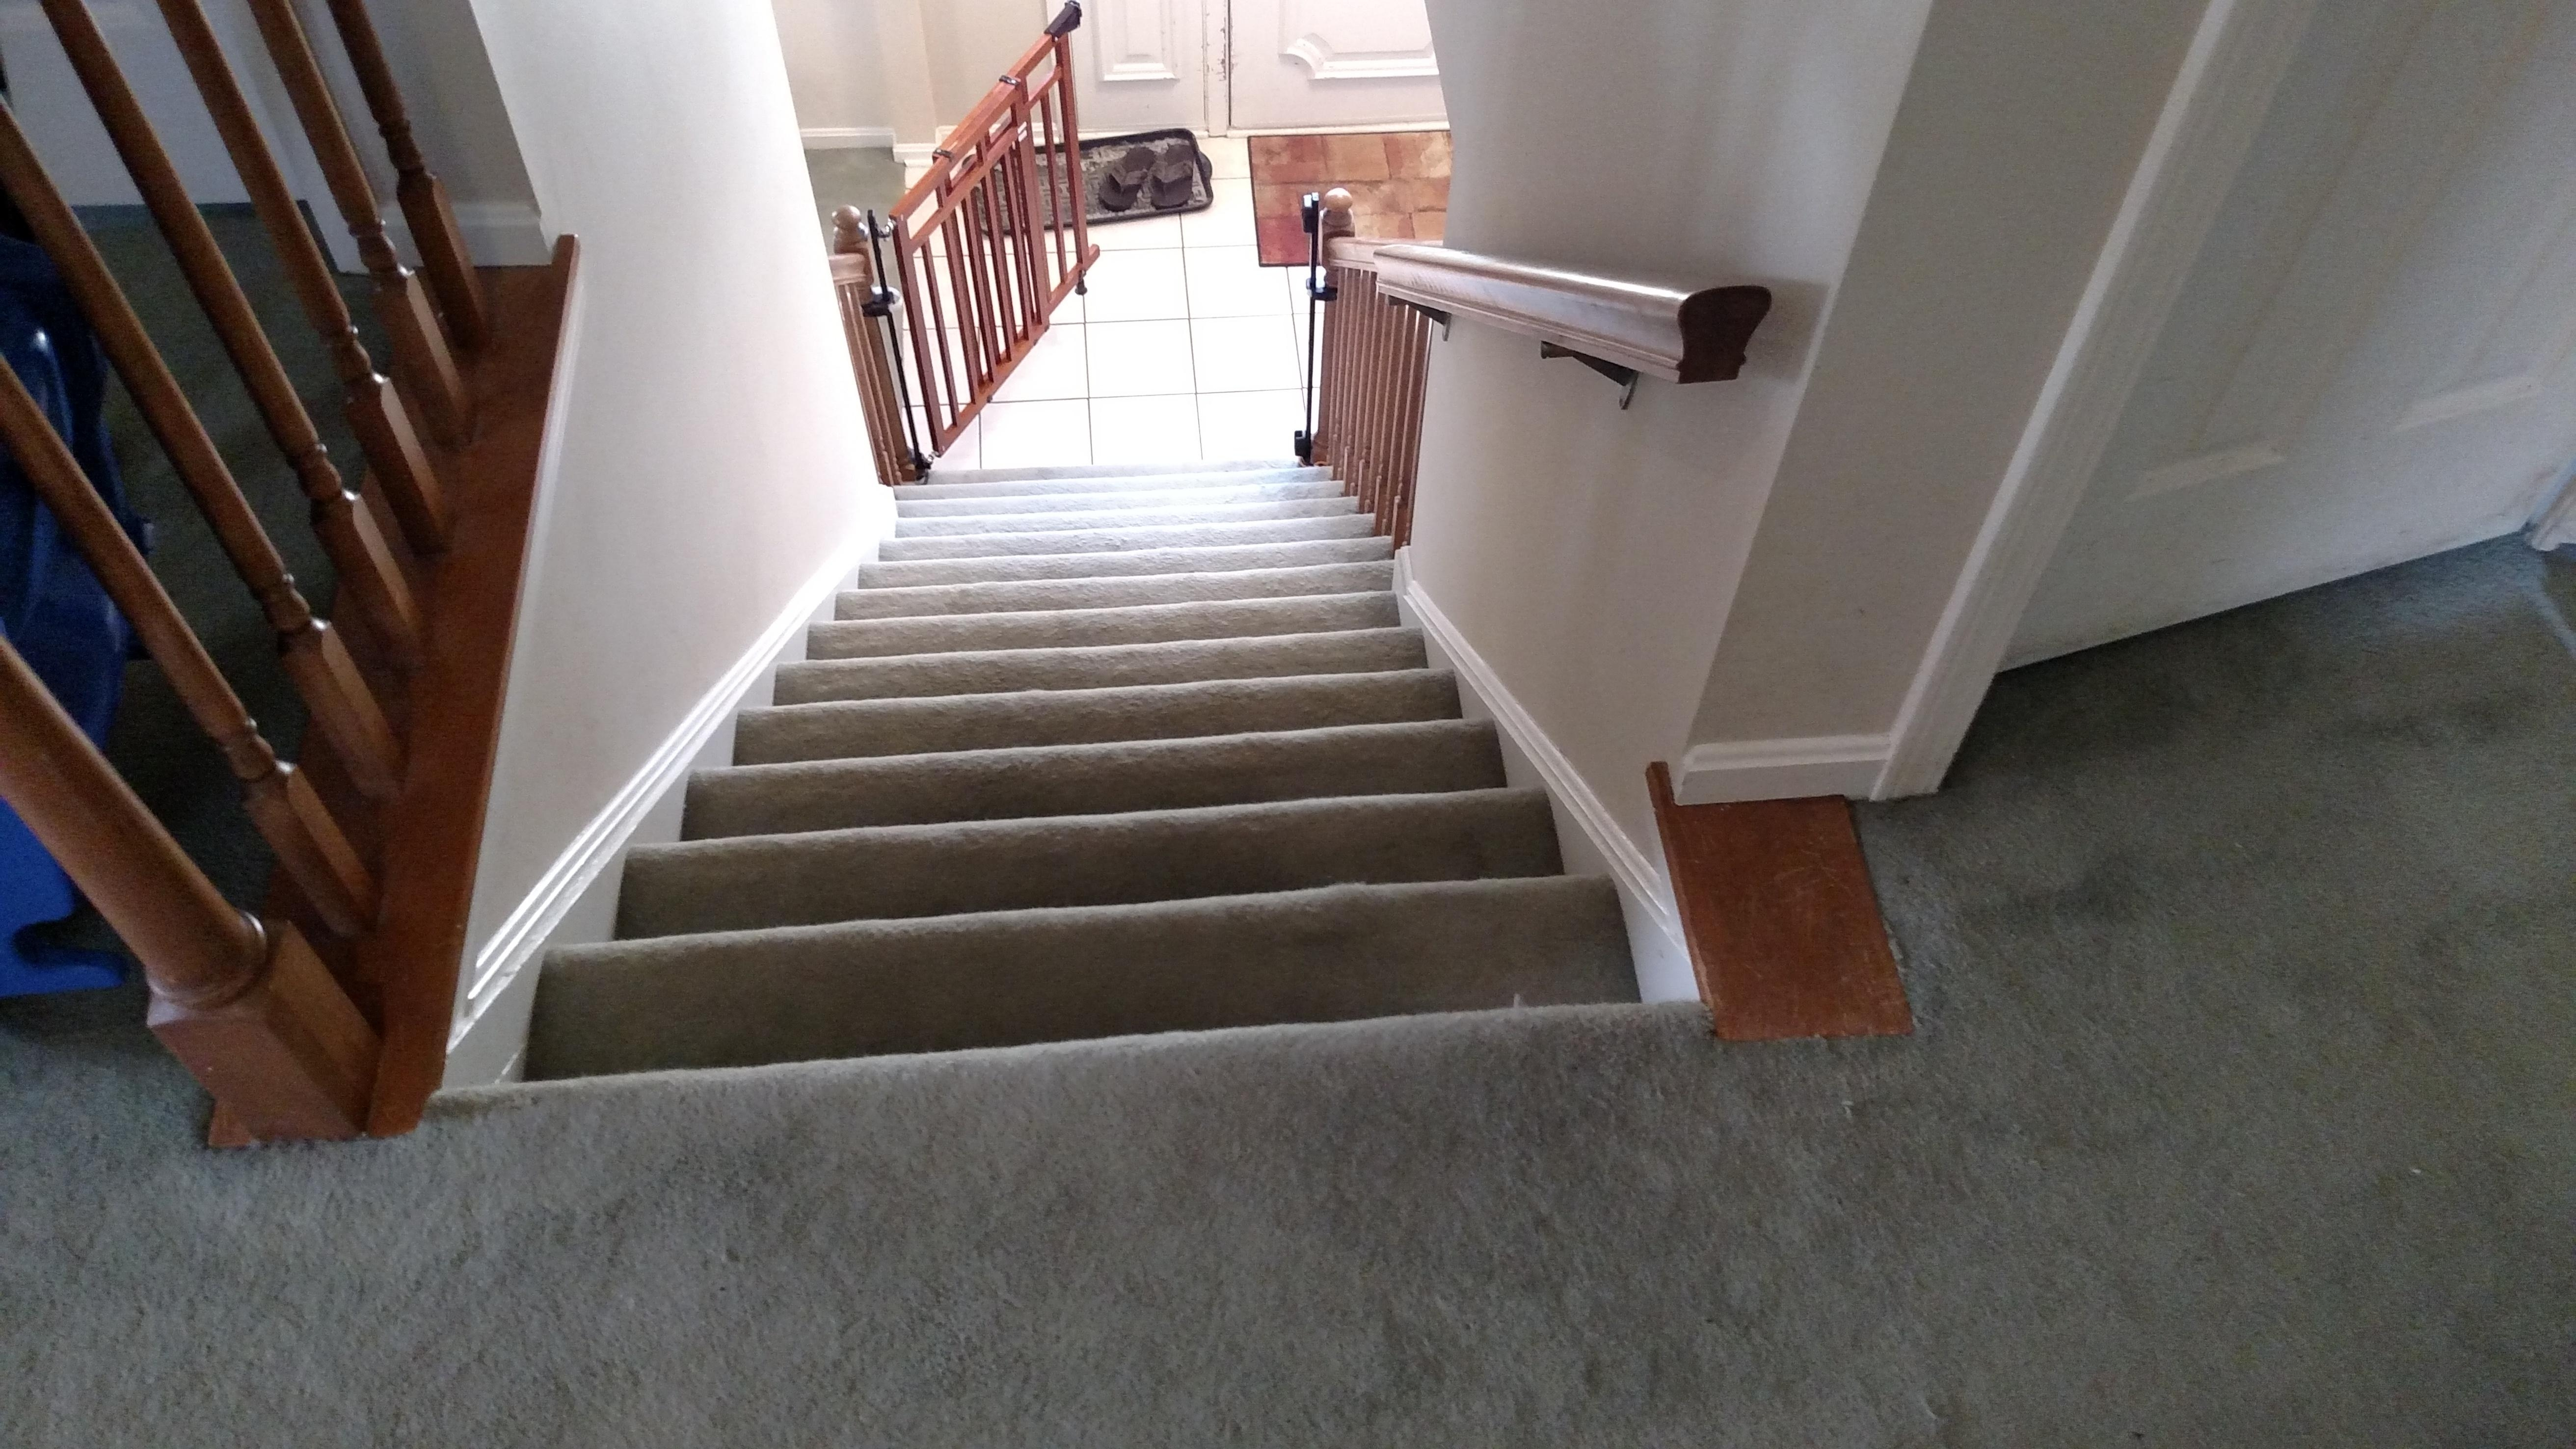 Need Suggestions For Baby Gate At Top Of Stairs The Wall Stops   Top Of Stairs Banister   Indoor   Rail   Barn Wood   Residential   Different Color